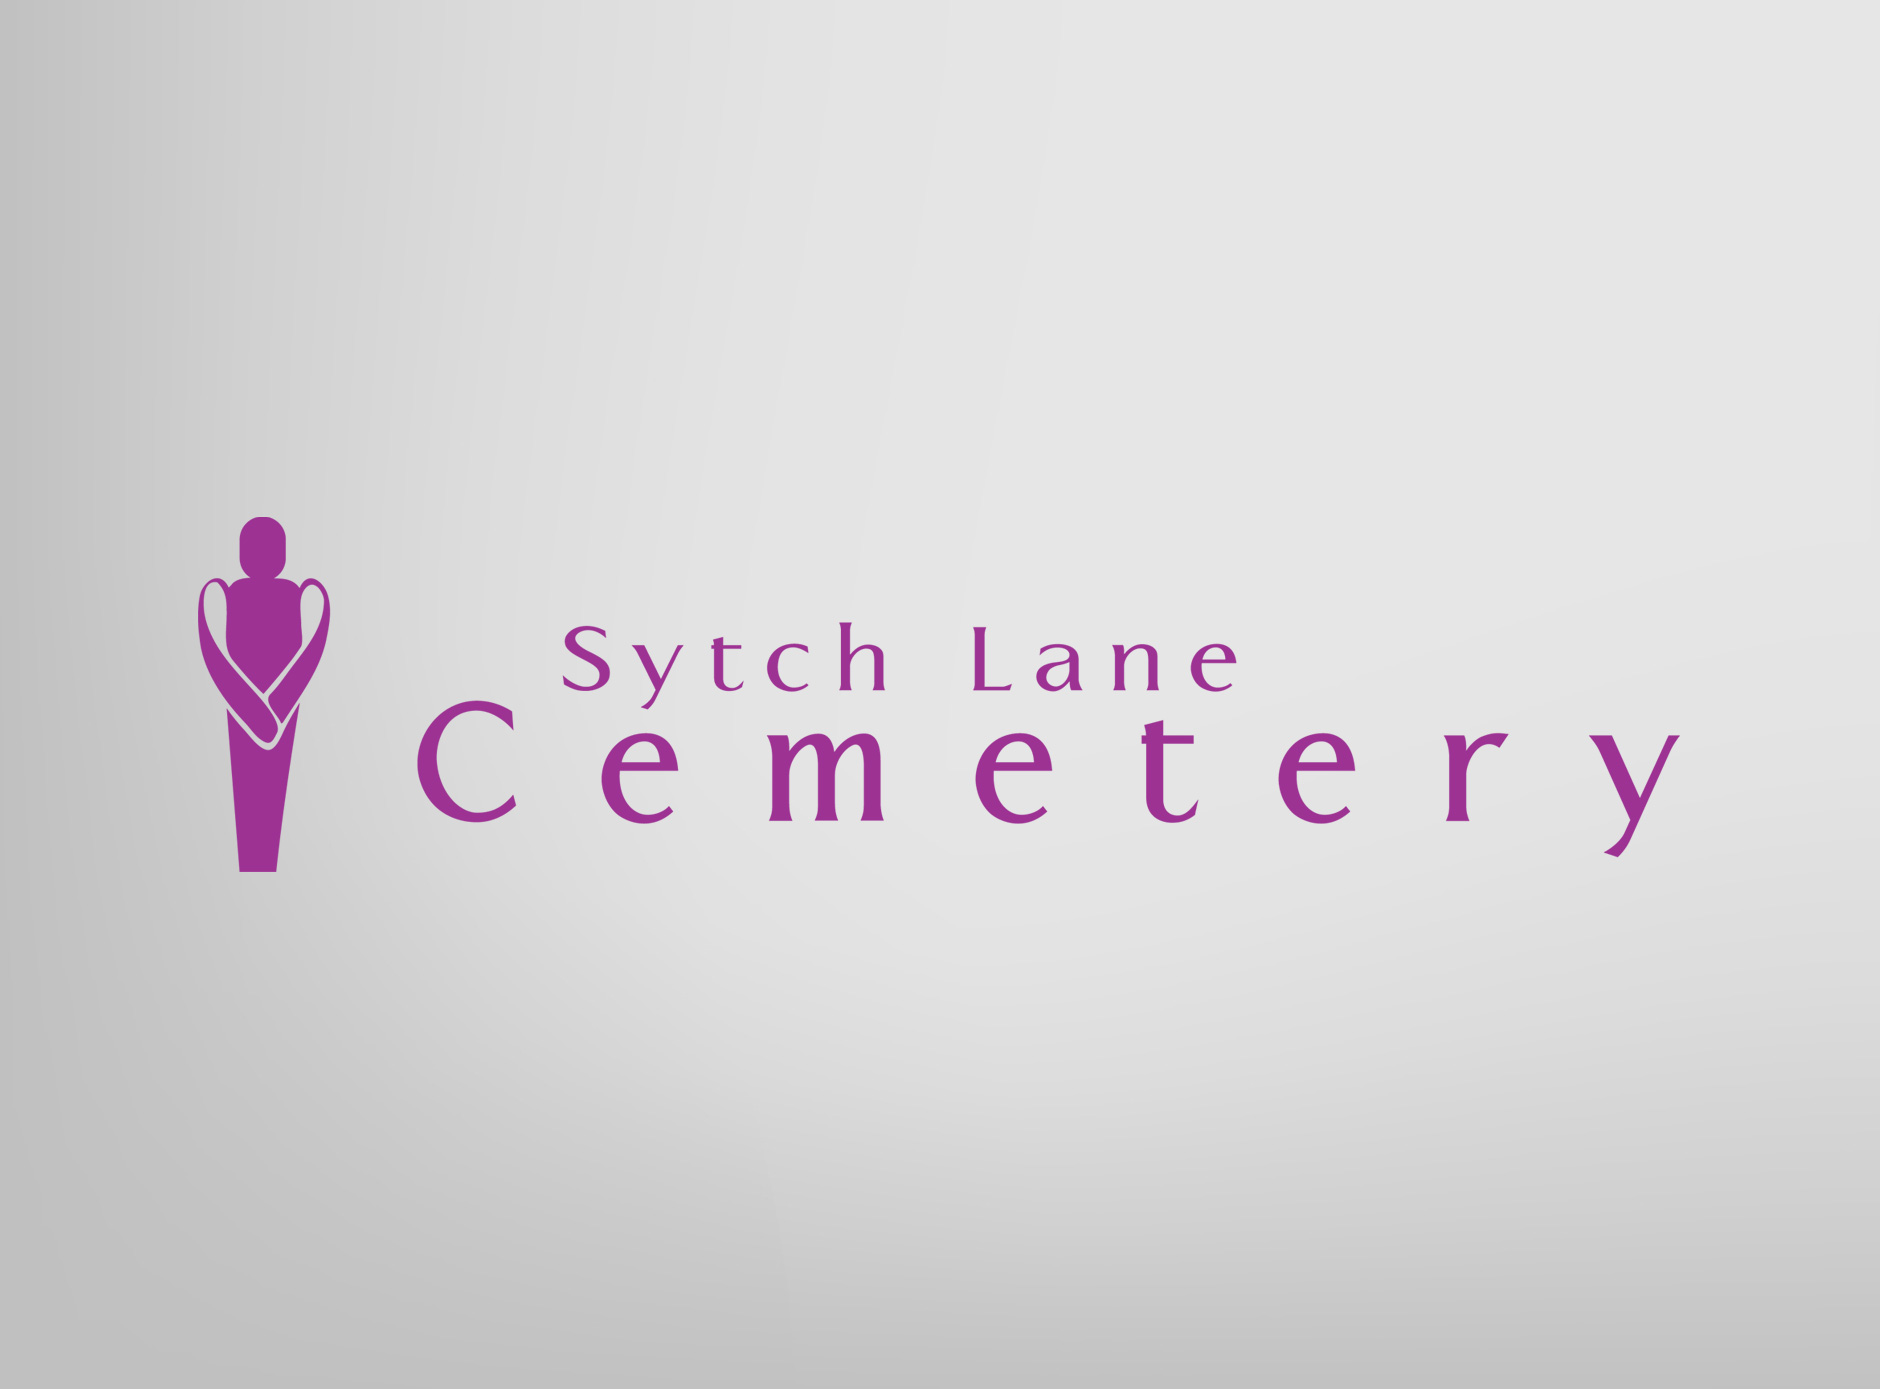 Sytch Lane Cemetery design for print